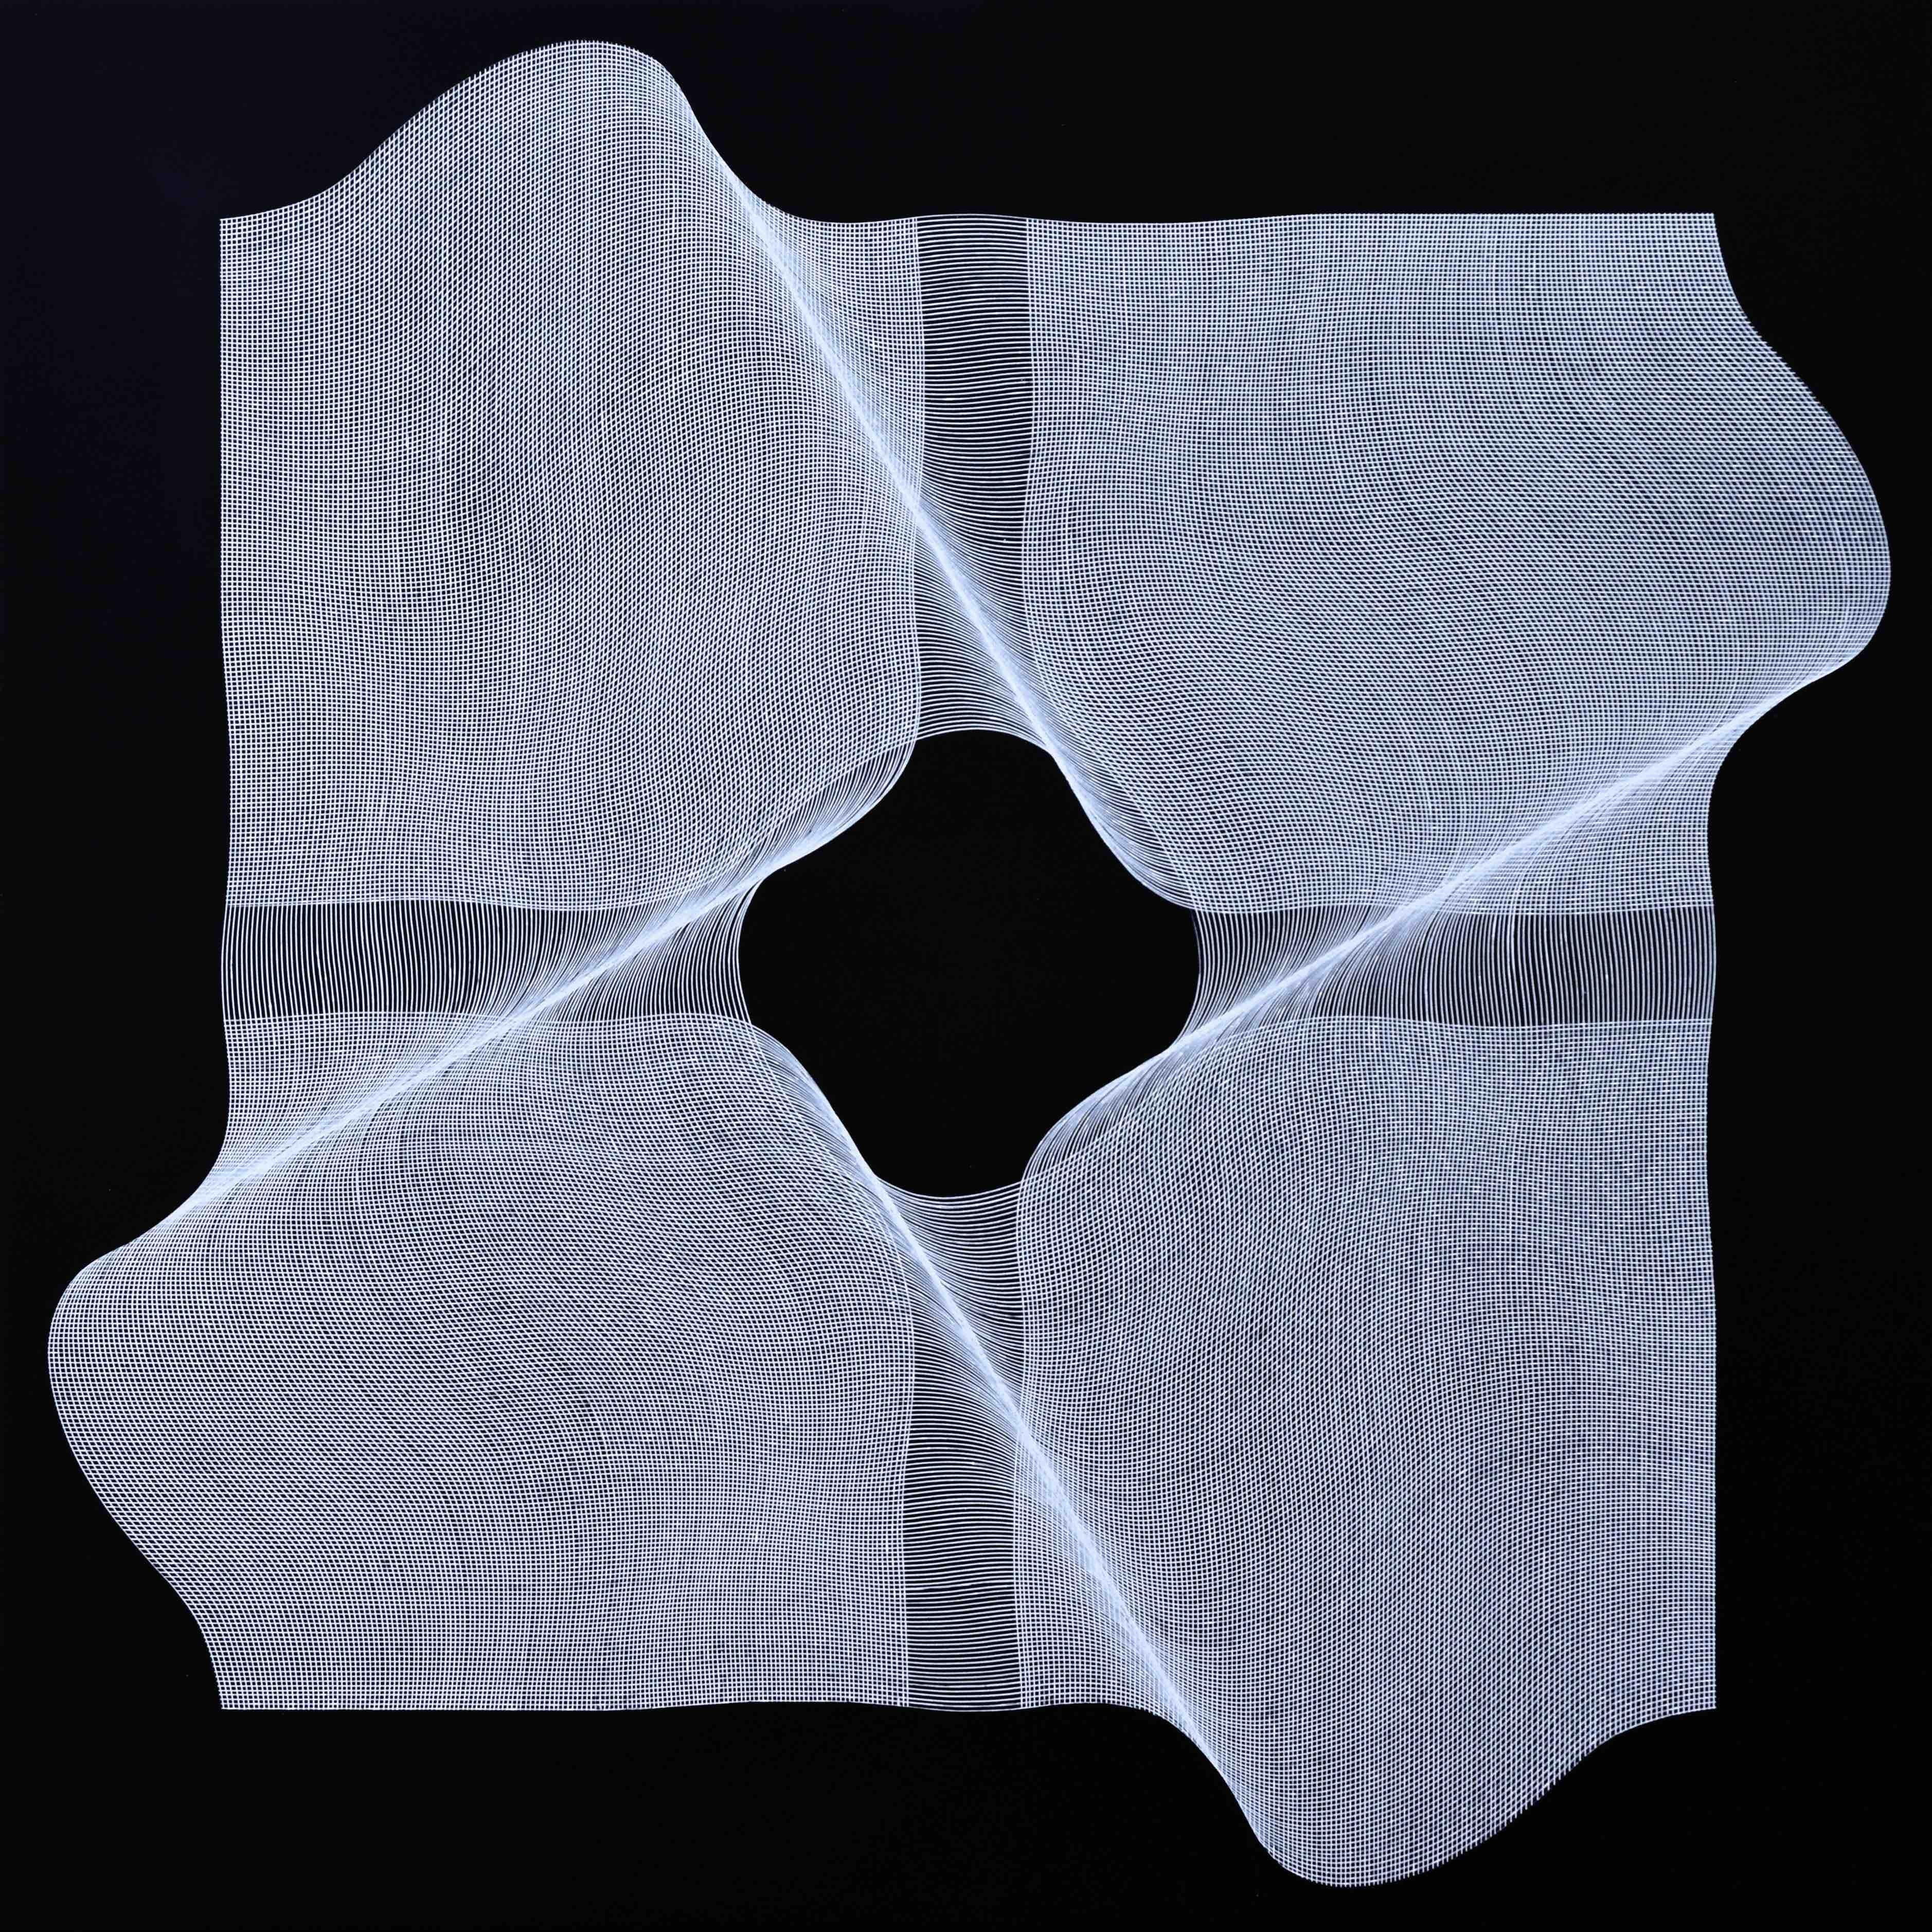 Dynamic Structures - geometric abstract painting